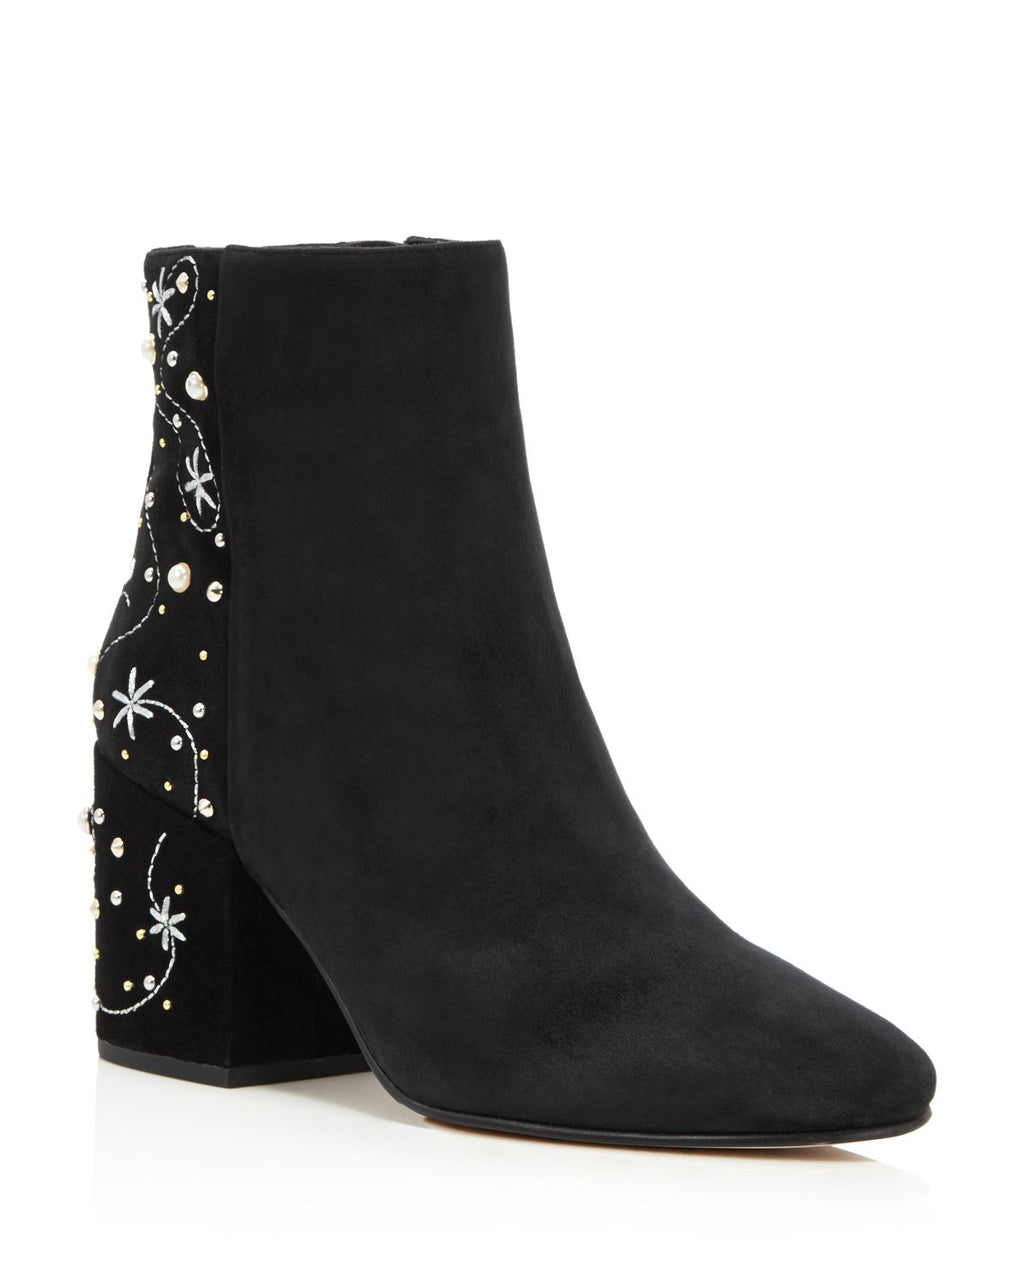 Sam Edelman Women's Taft Embroidered Pearl Stud Booties